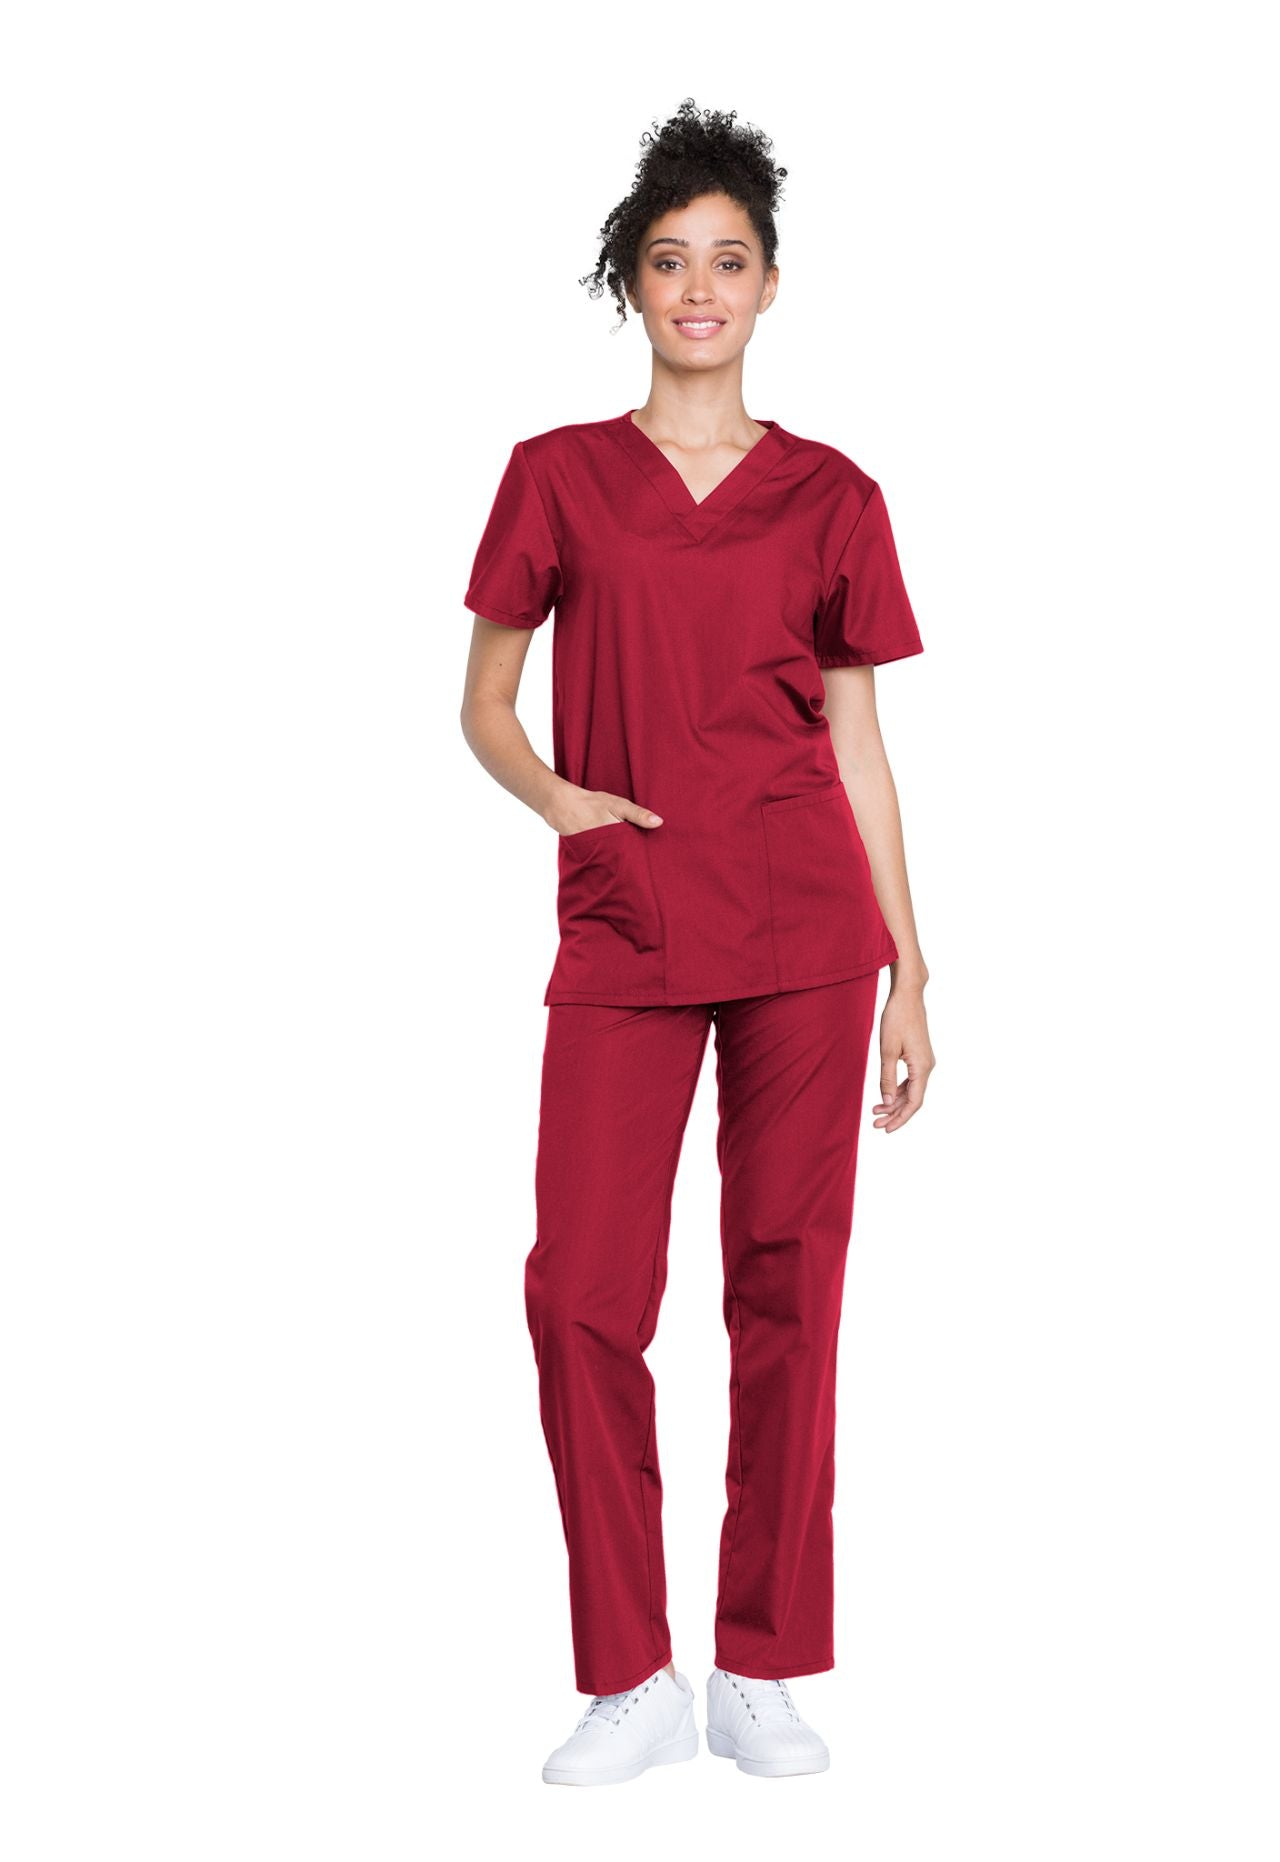 Red - Cherokee Workwear Originals Unisex Top and Pant Set